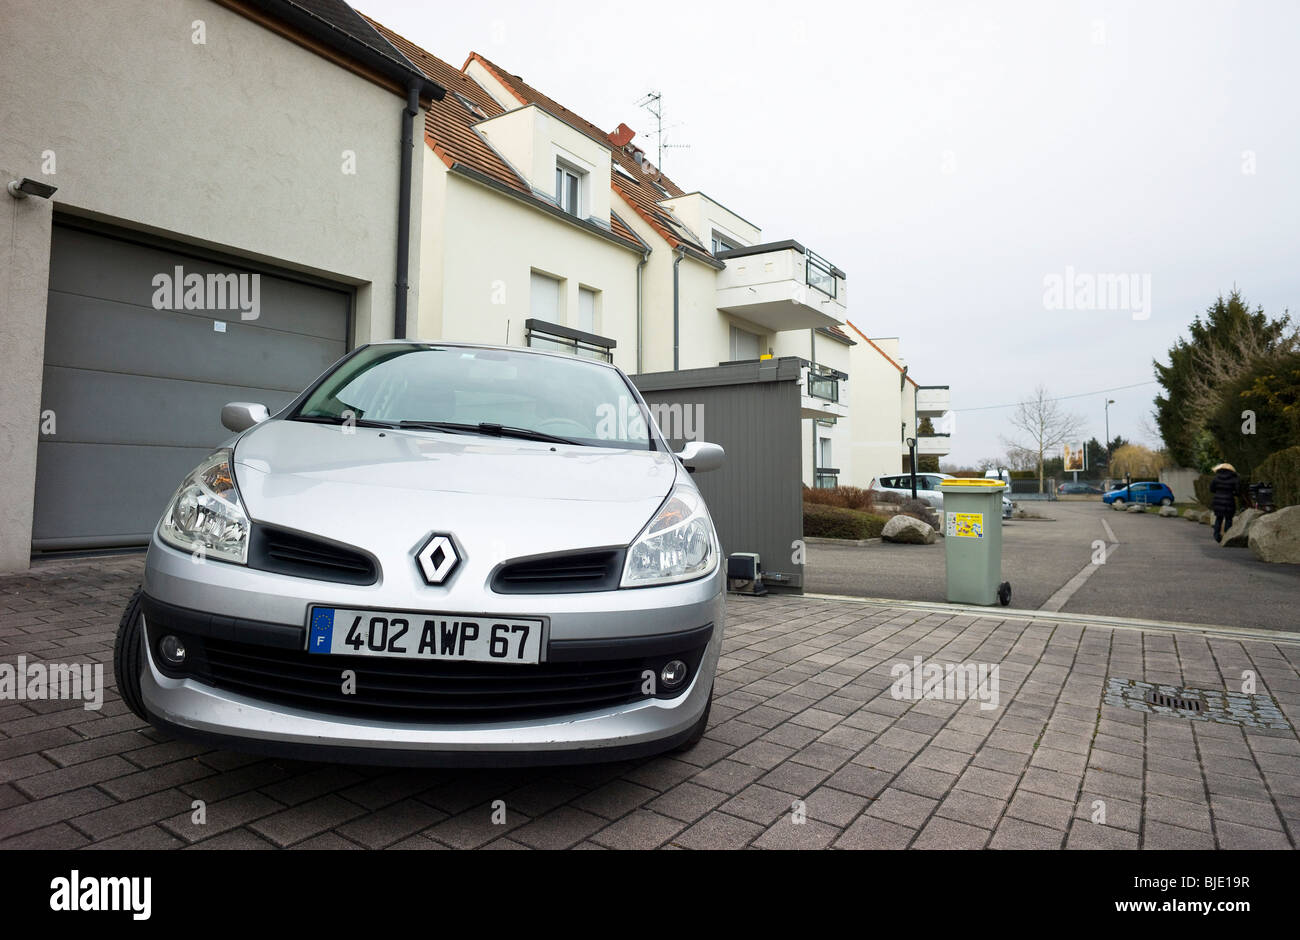 france garage car stockfotos france garage car bilder alamy. Black Bedroom Furniture Sets. Home Design Ideas